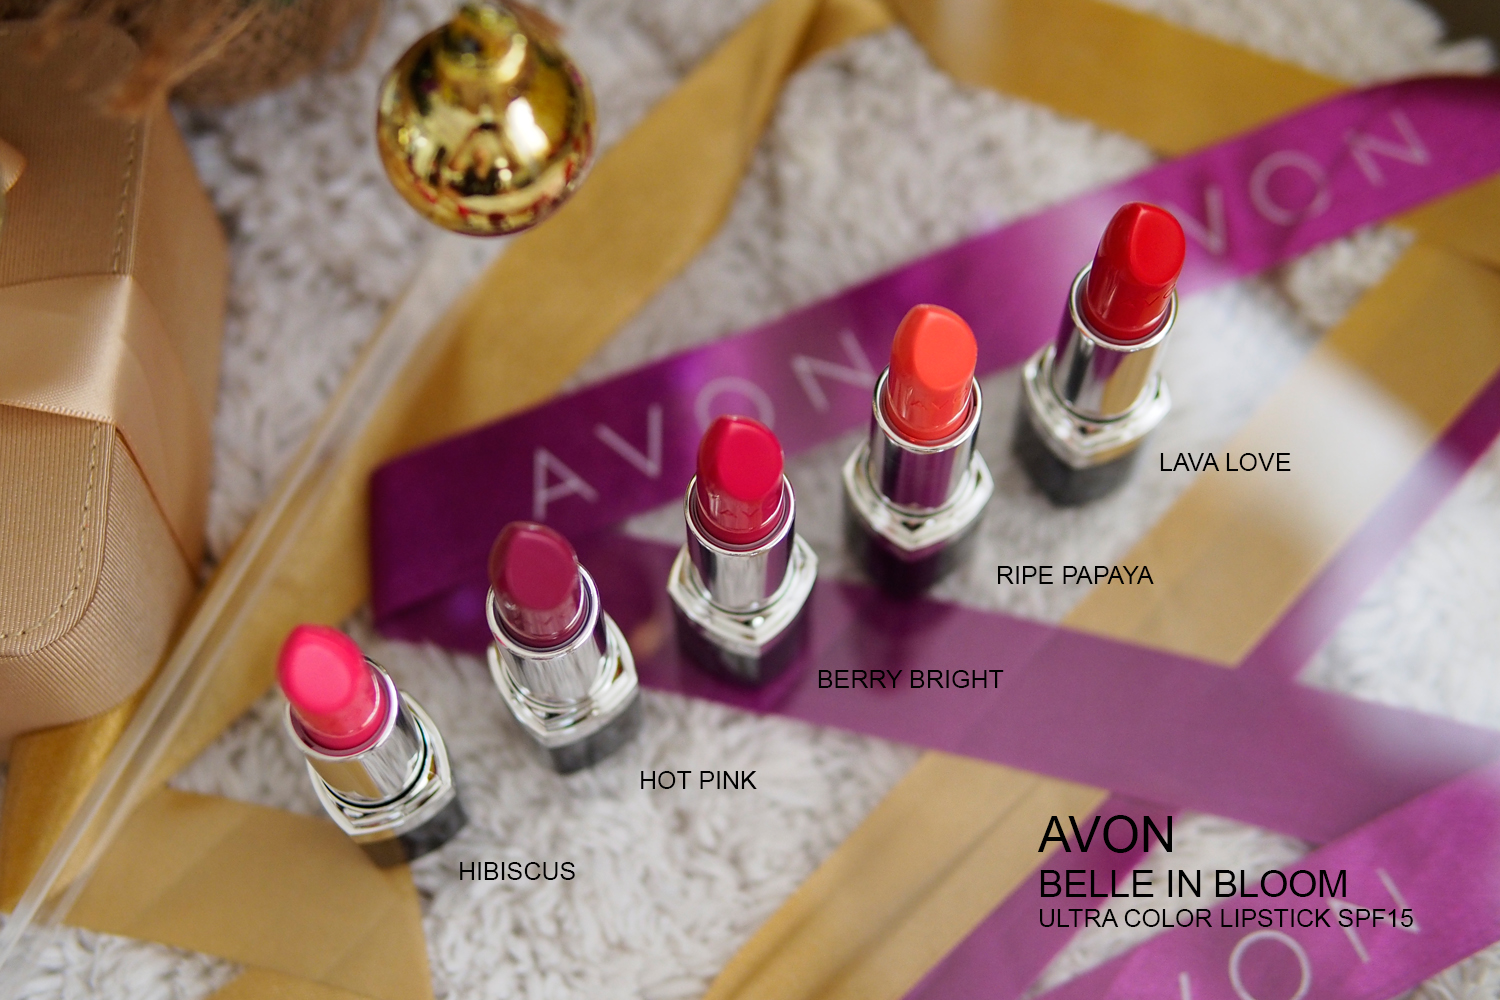 AVON BELLE IN BLOOM LIPSTICKS